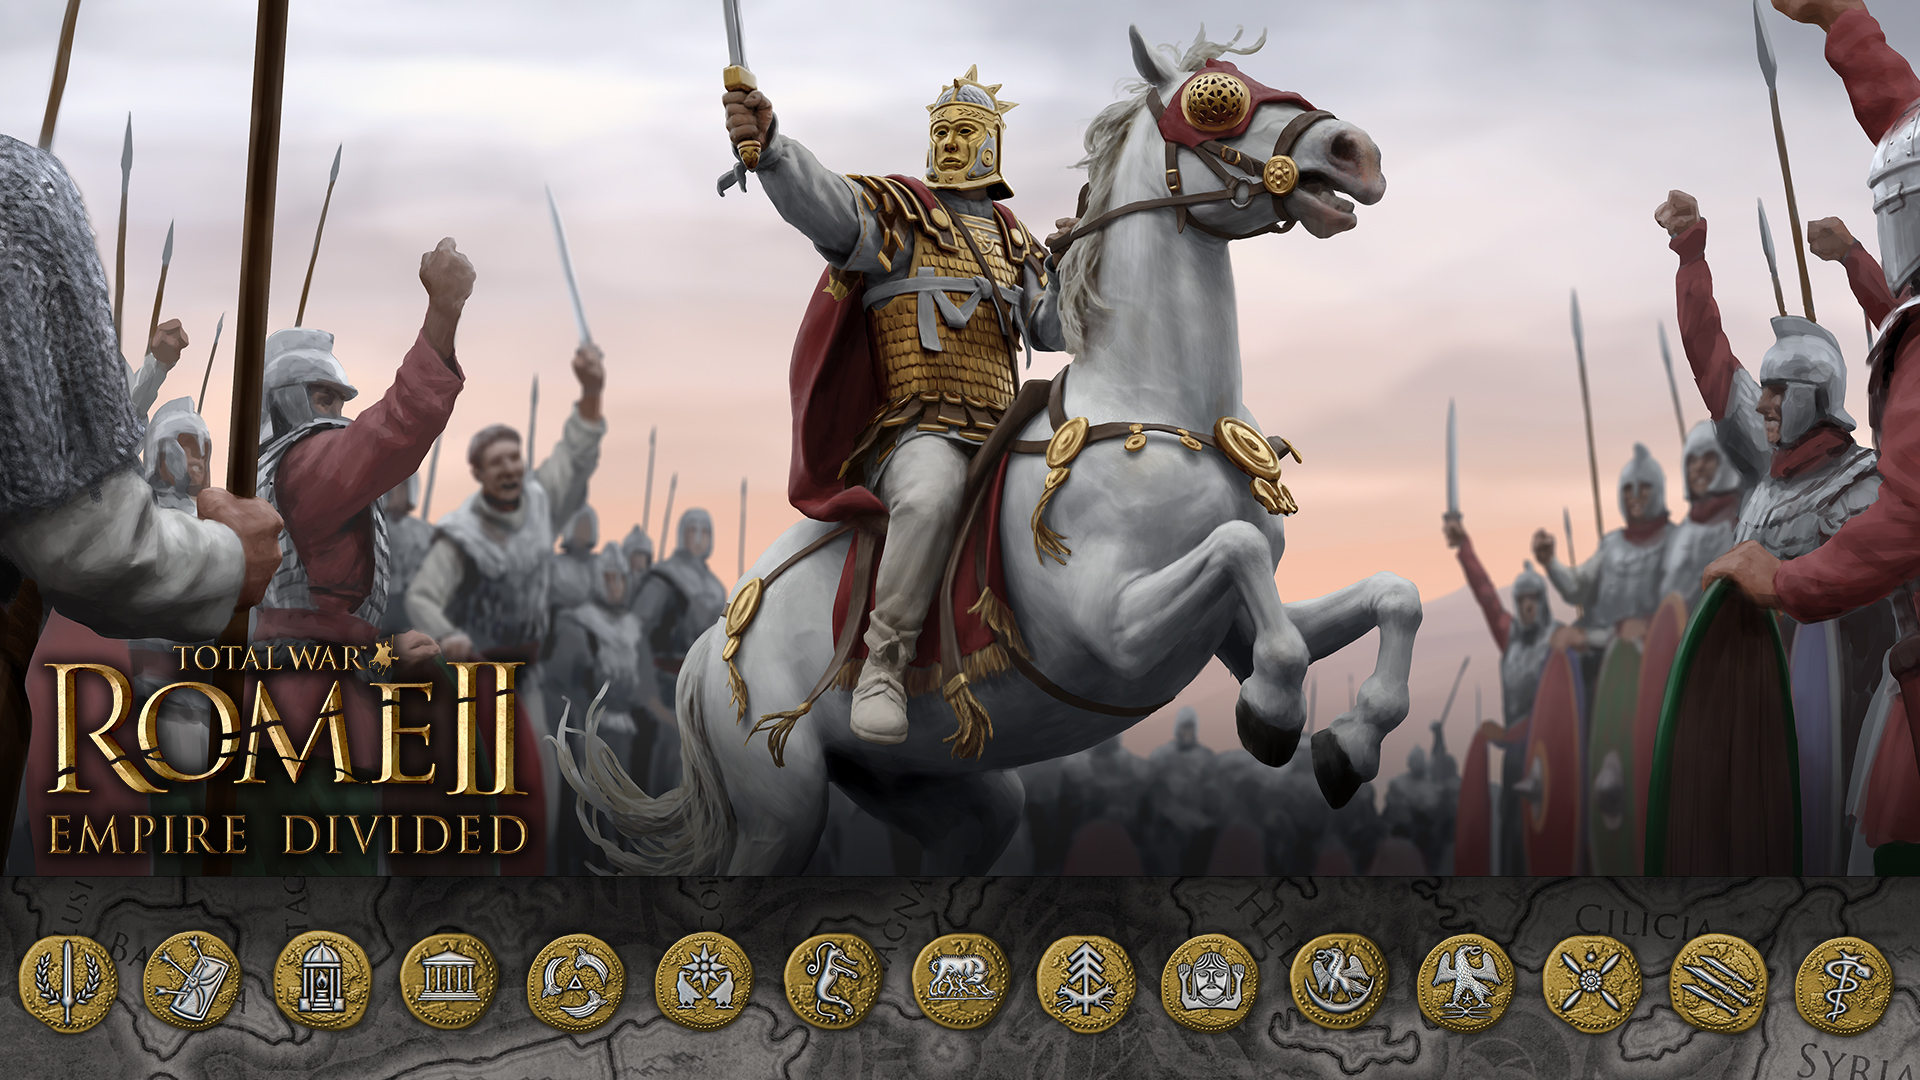 the influence of the fall of the roman empire on europe What impact did the fall of rome have on western europe roman empire did not fall vast swathes of roman territory, although the influence of rome on.